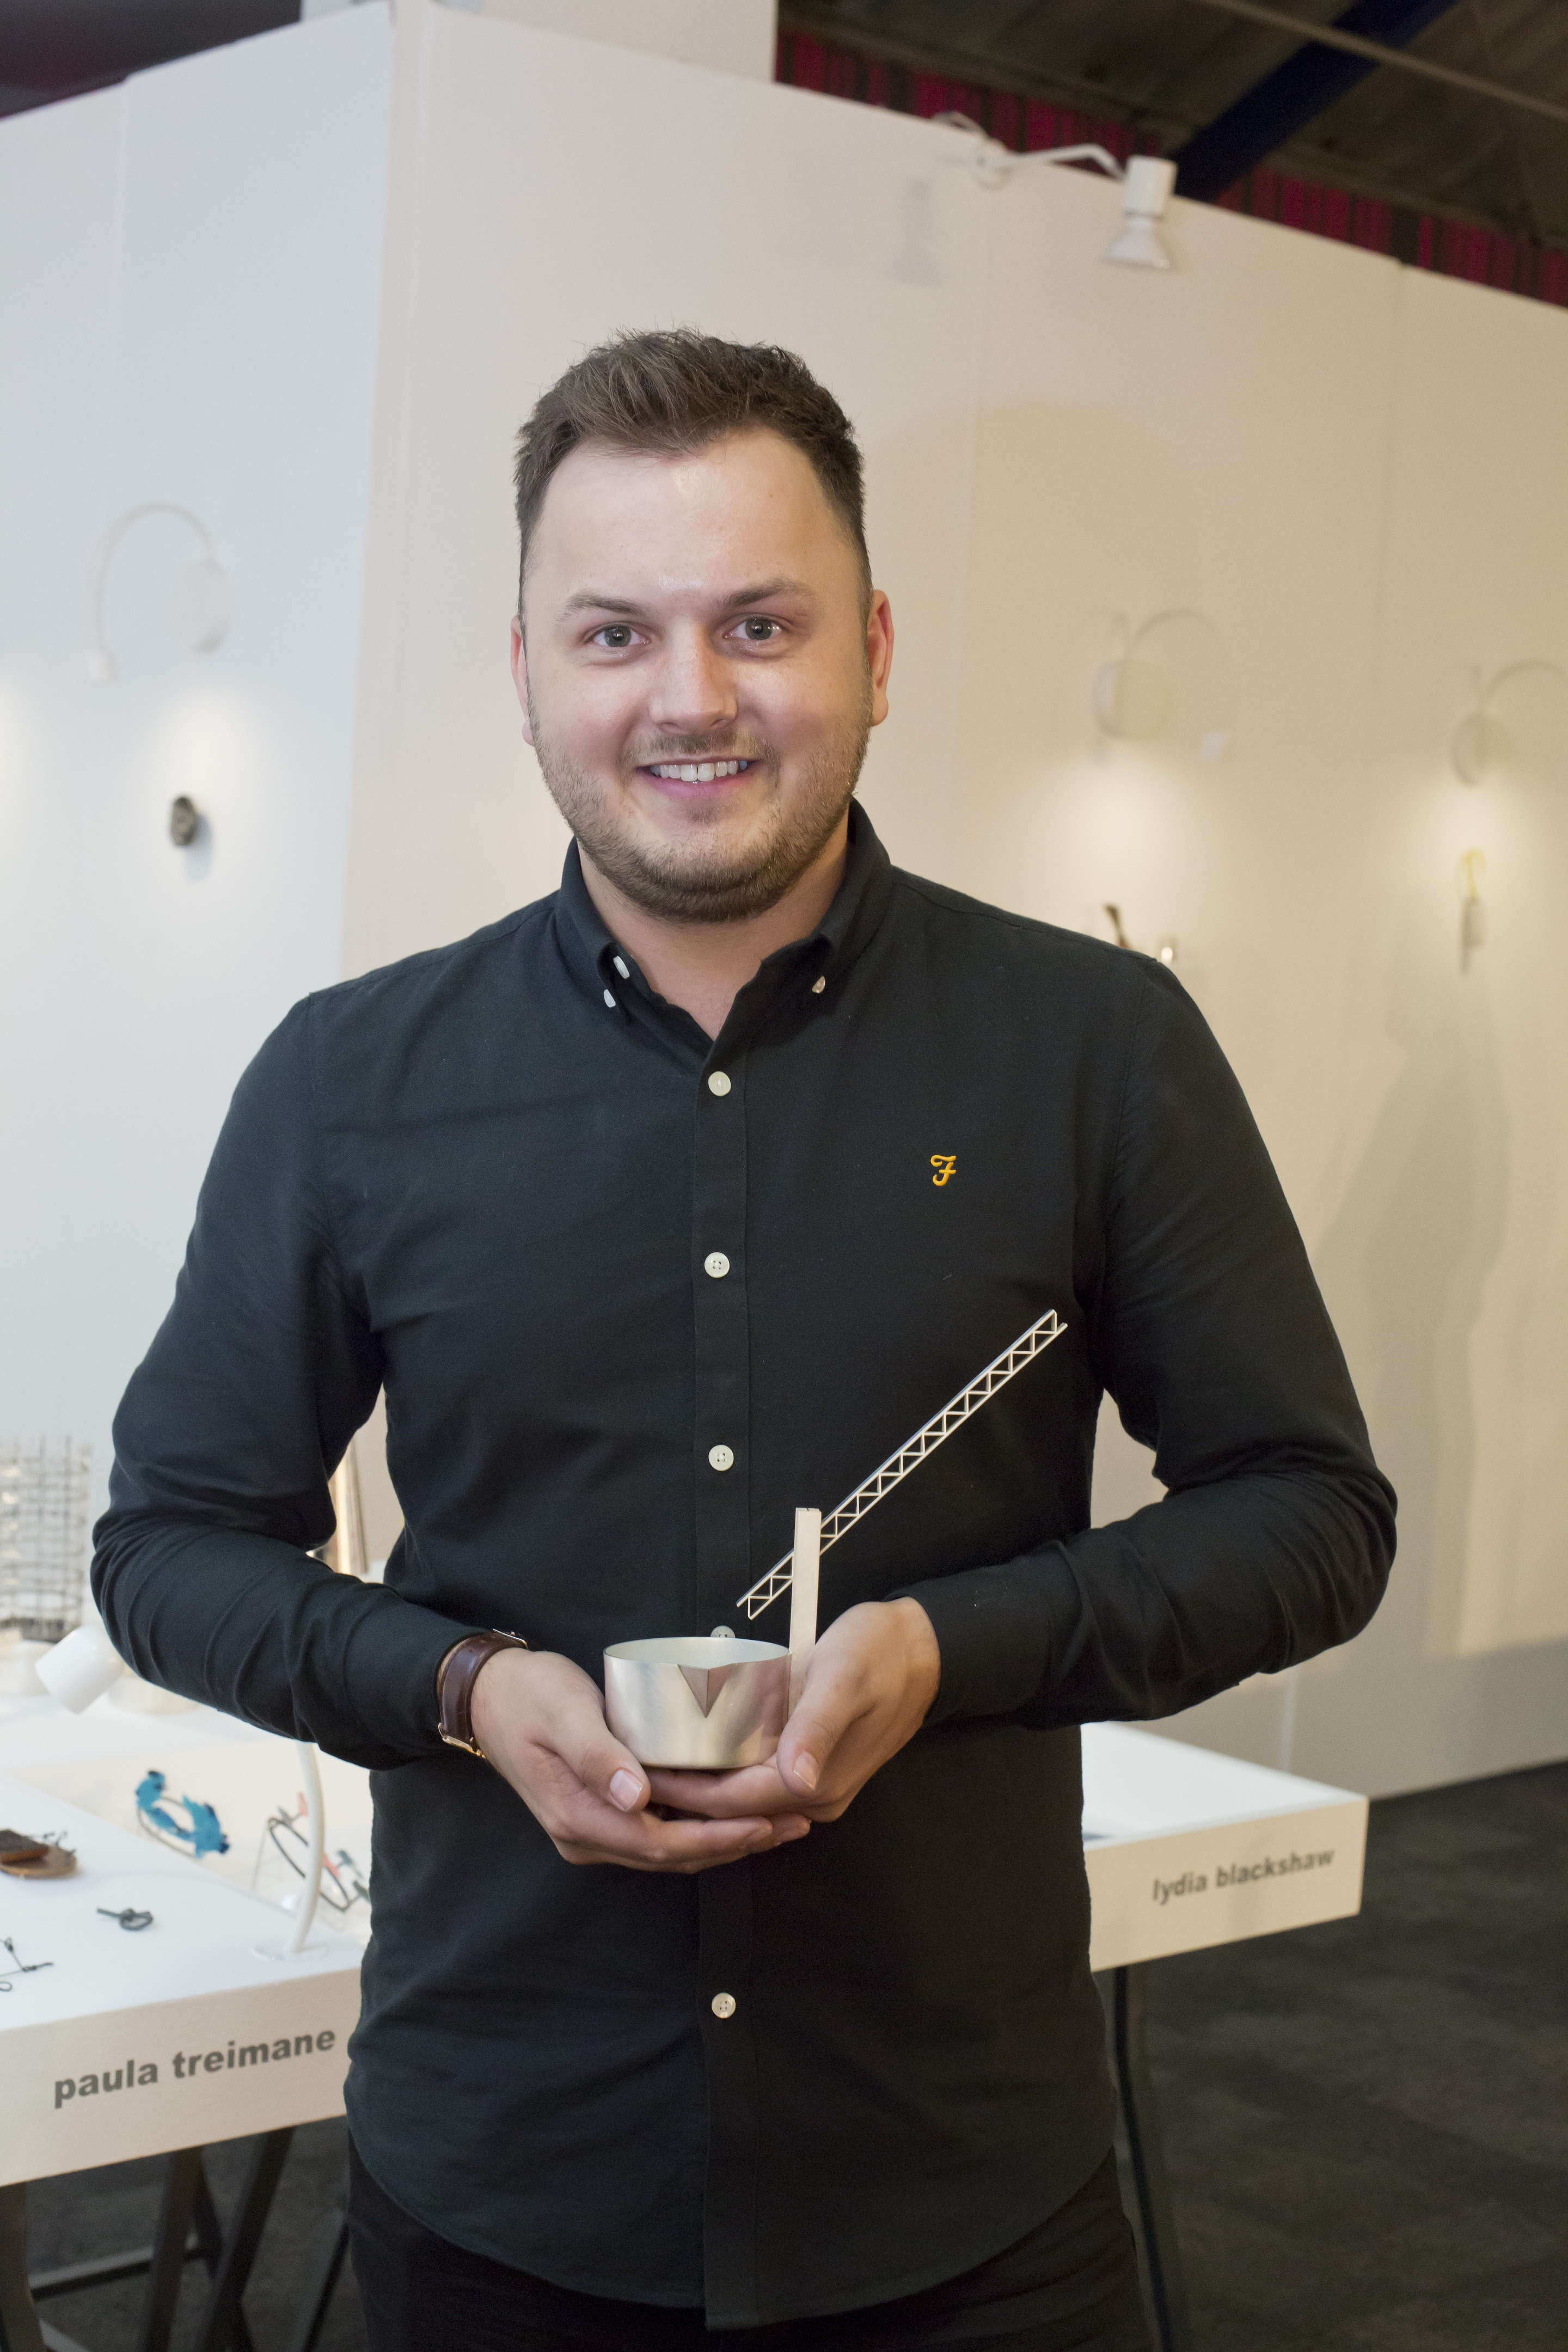 Andrew Fleming, winner of the 2017 New Designers Goldsmiths' Company Silversmithing Award. Photography by thedpc.com